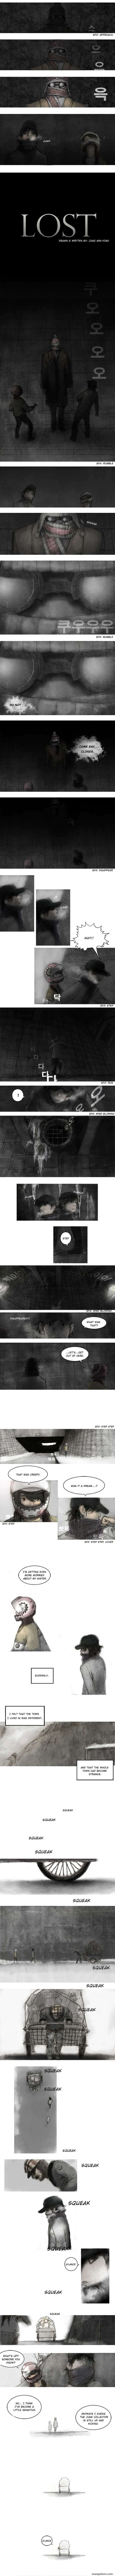 Lost (Jung Min Yong) 4 Page 1